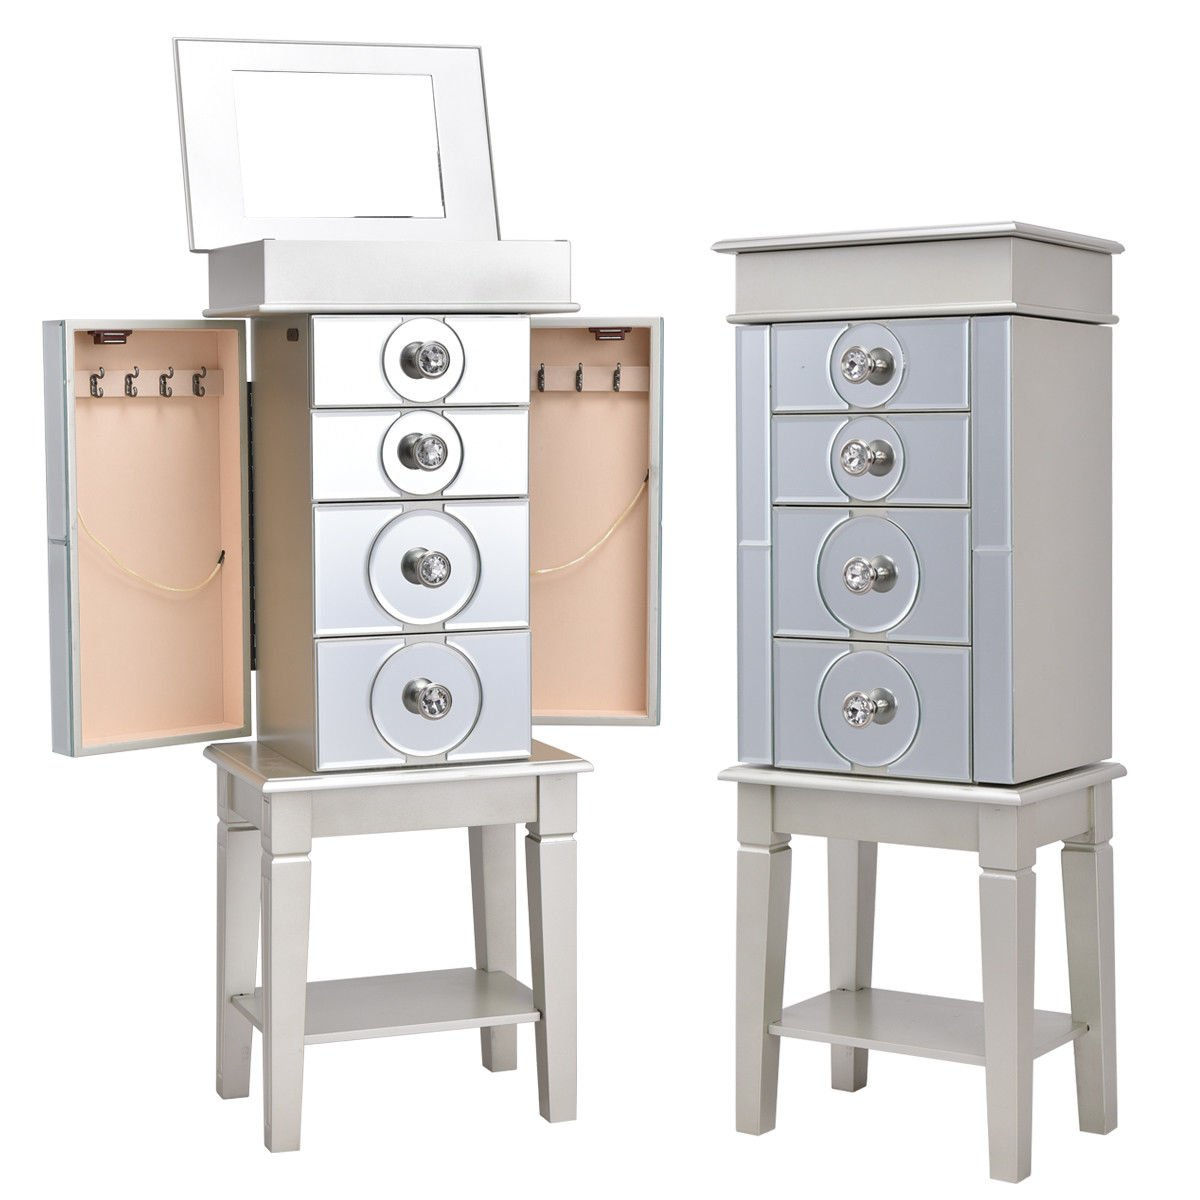 Gorgeous Glam Modern Mirrored Free Standing Jewelry Armoire Box Storage Cabinet 14'' × 9.1'' × 35''